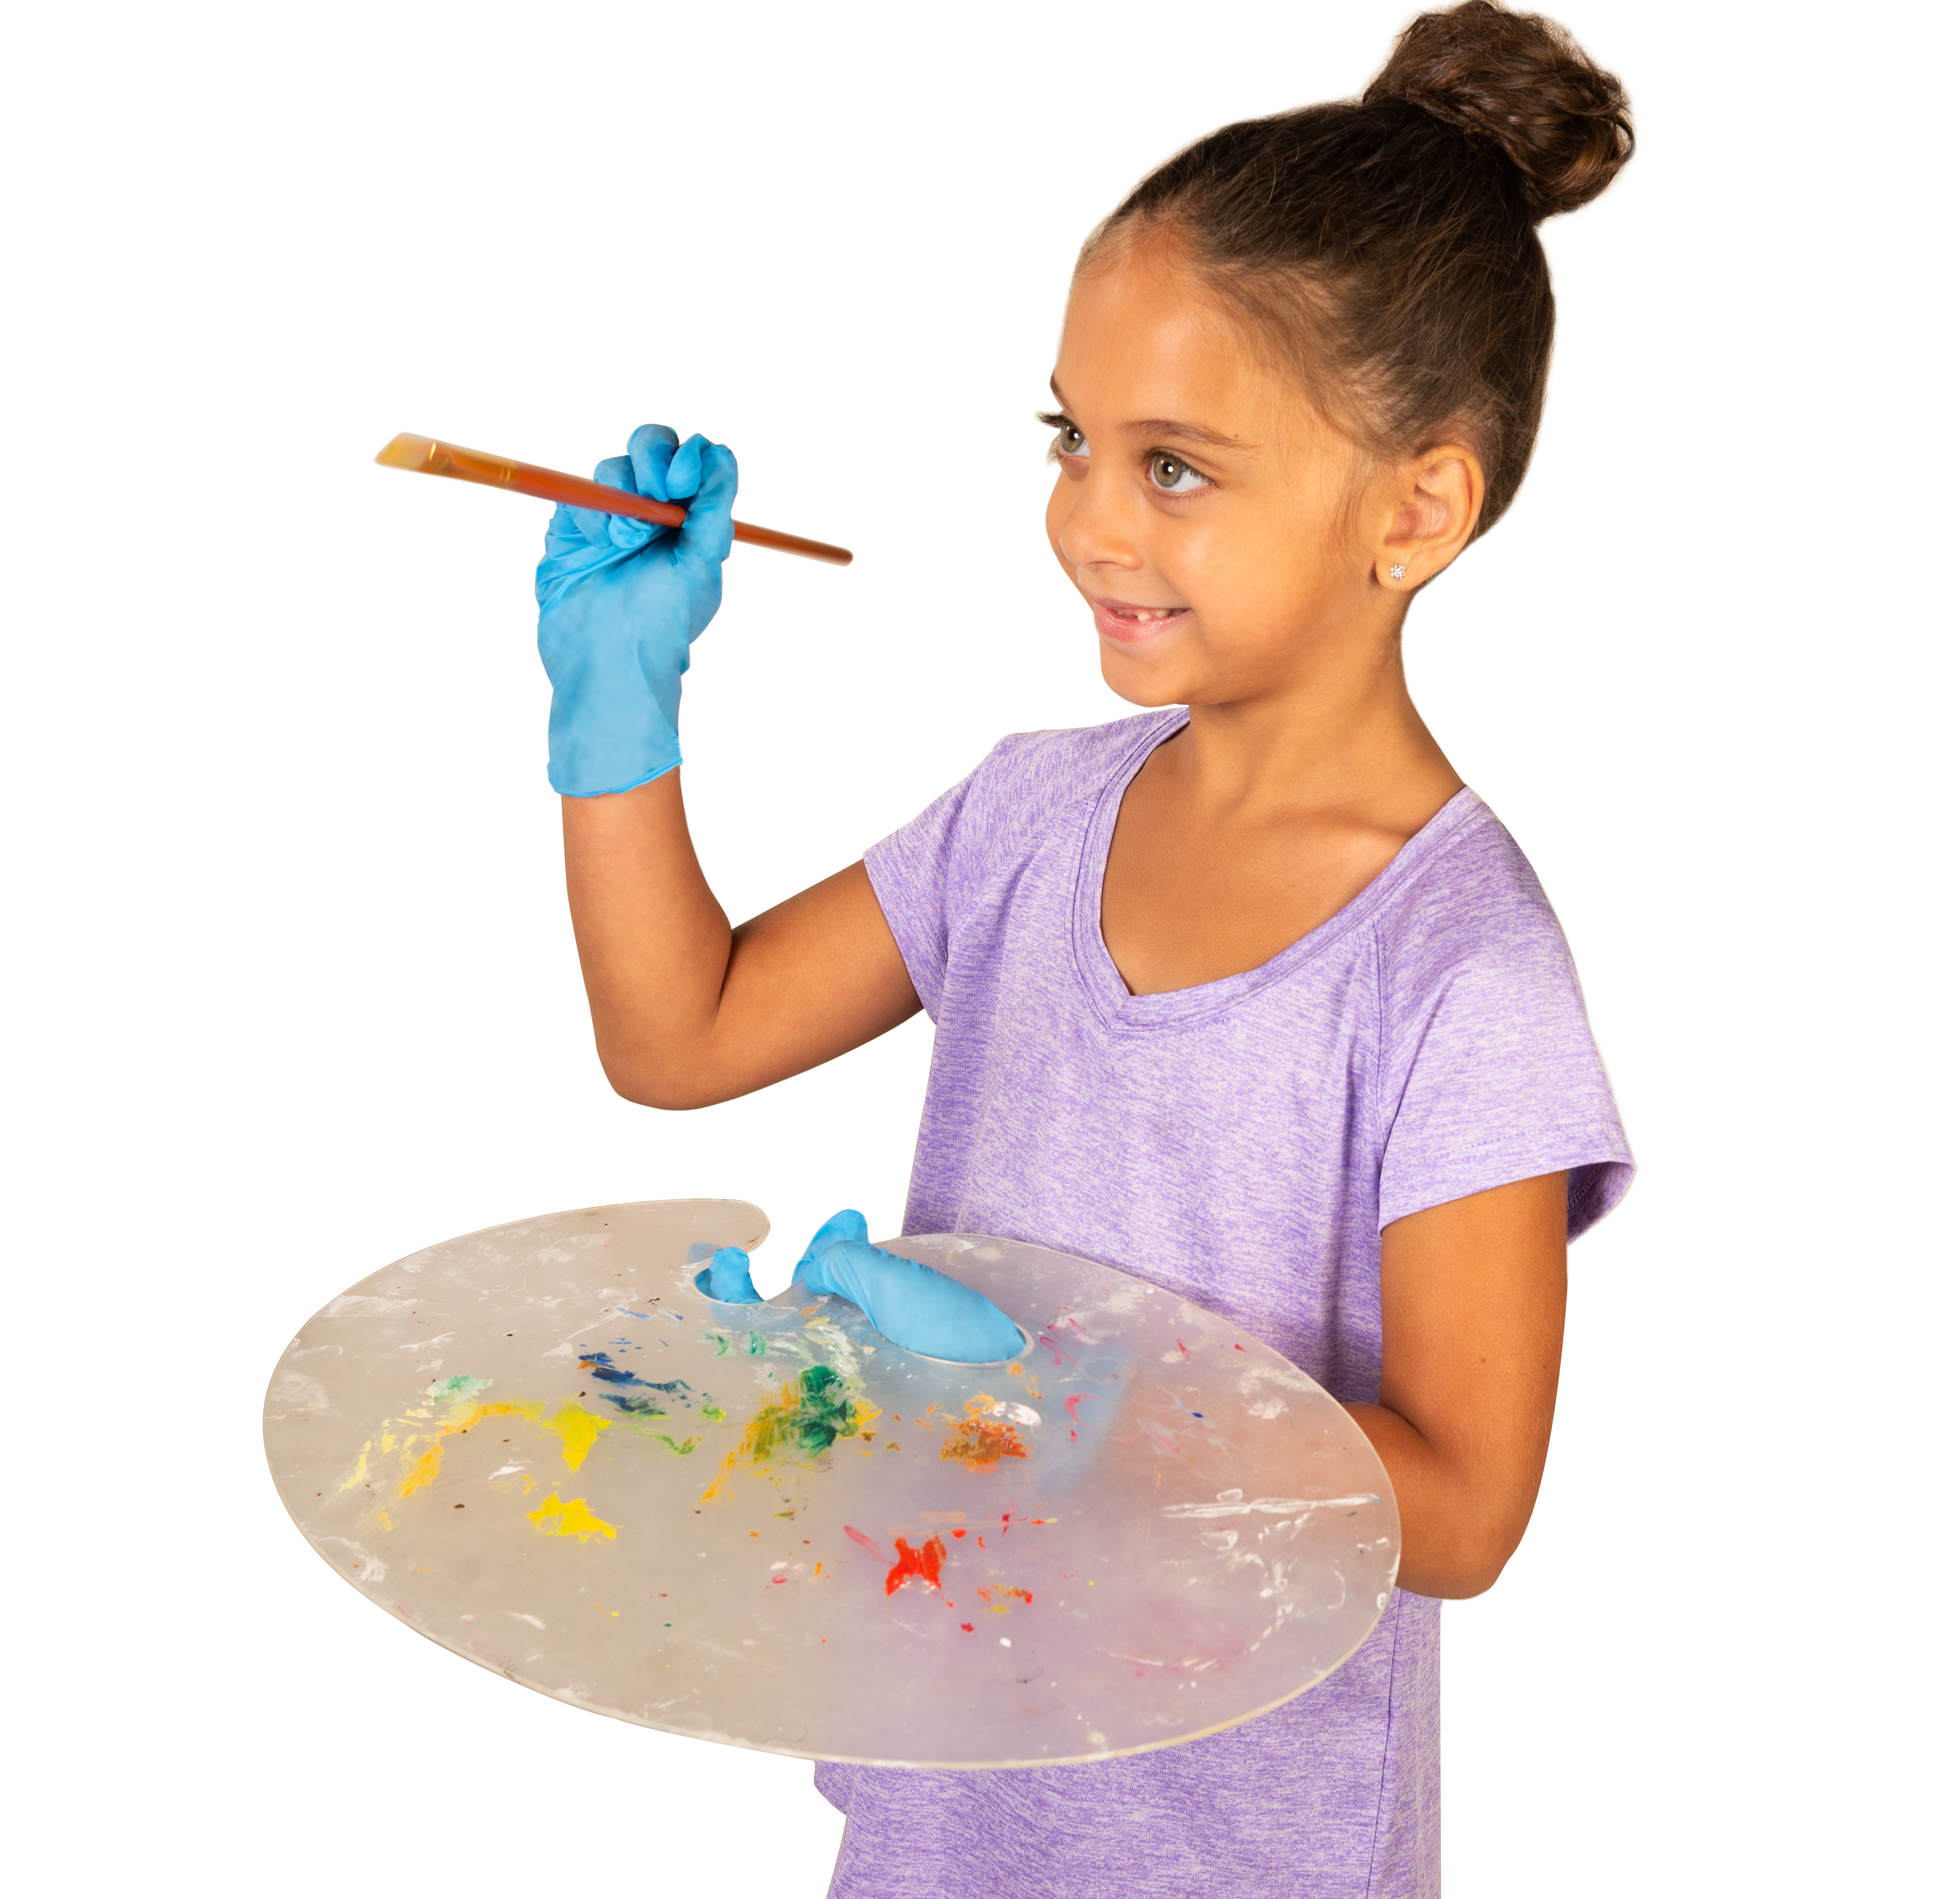 Tronex Kids Nitrile Disposable Gloves for 6-12 Years, Food Safe, Multipurpose, Fingertip-Textured,